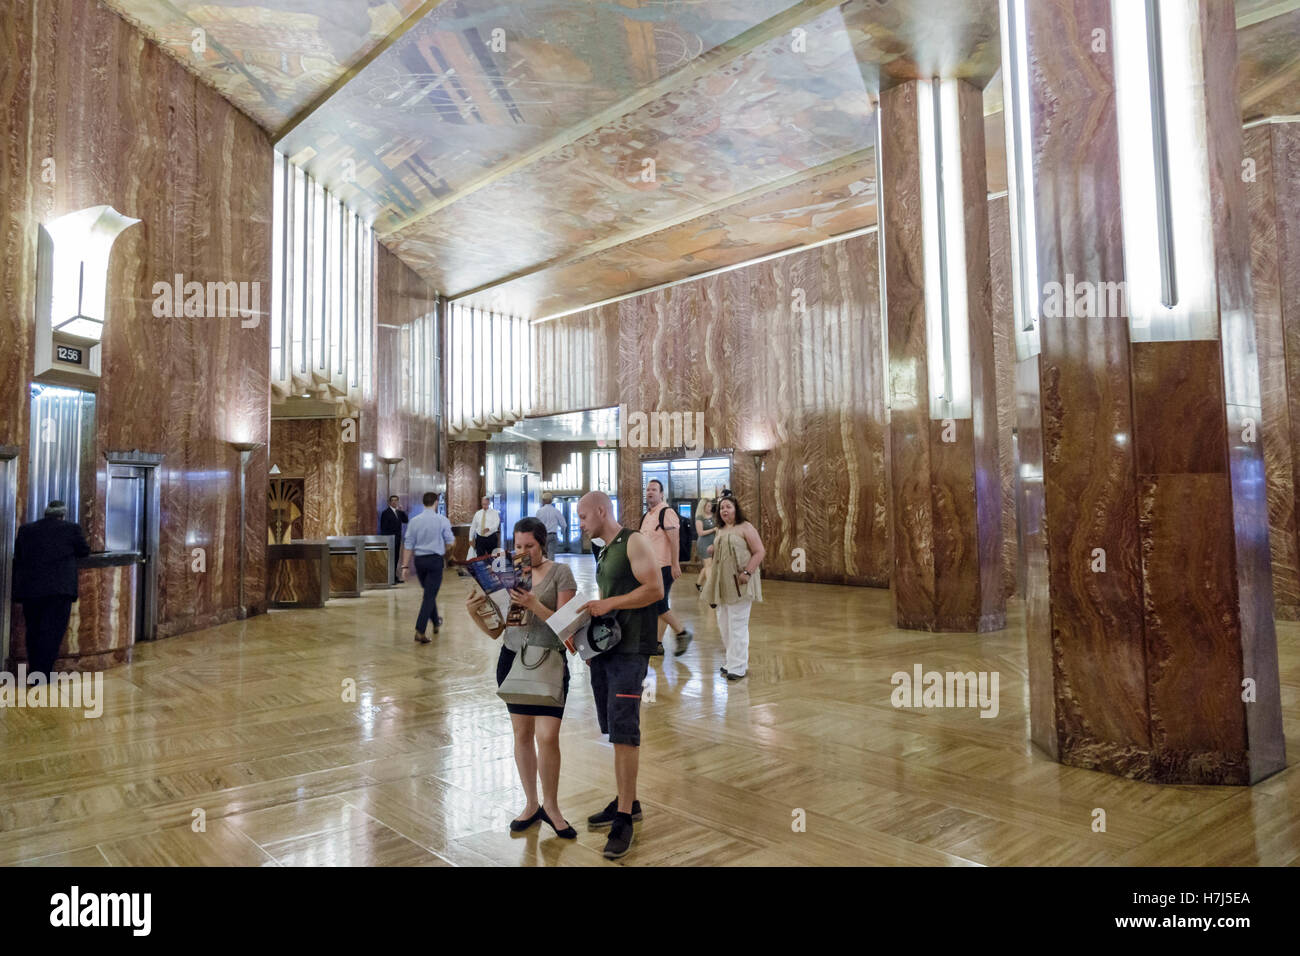 Manhattan New York City NYC NY Midtown 42nd Street Chrysler Building lobby marble Art Deco man woman couple ceiling - Stock Image